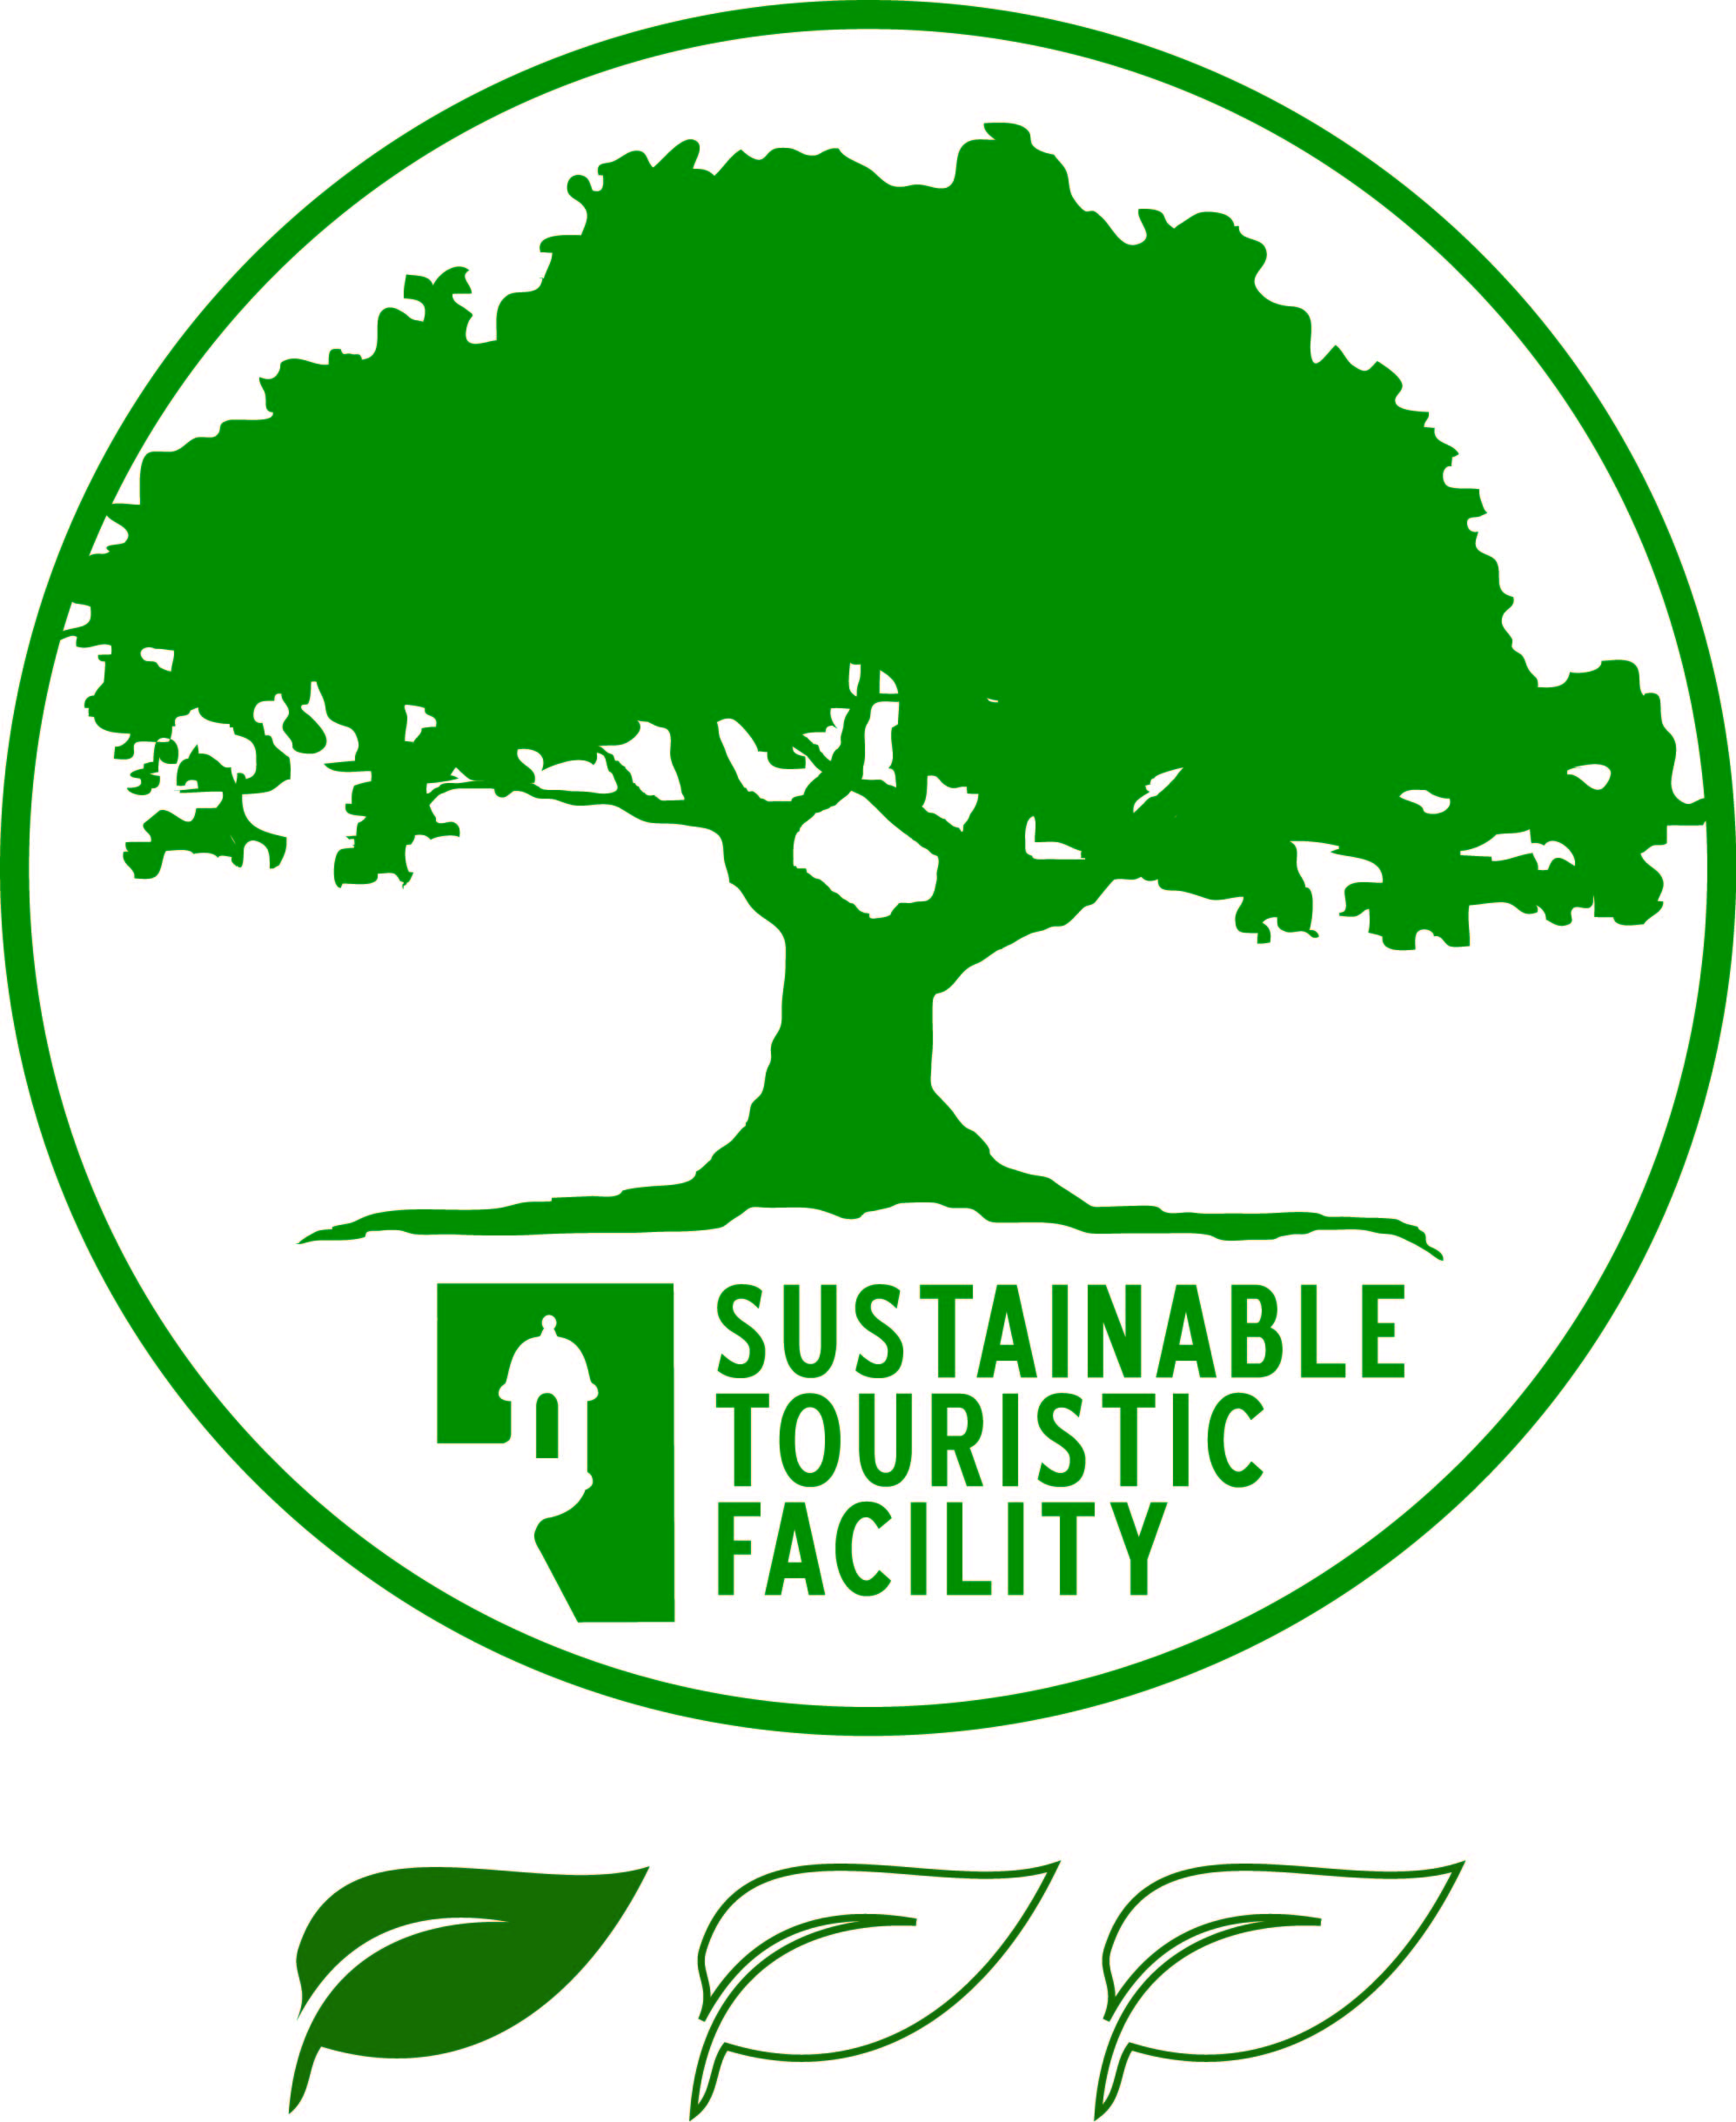 Sustainable Touristic Facility